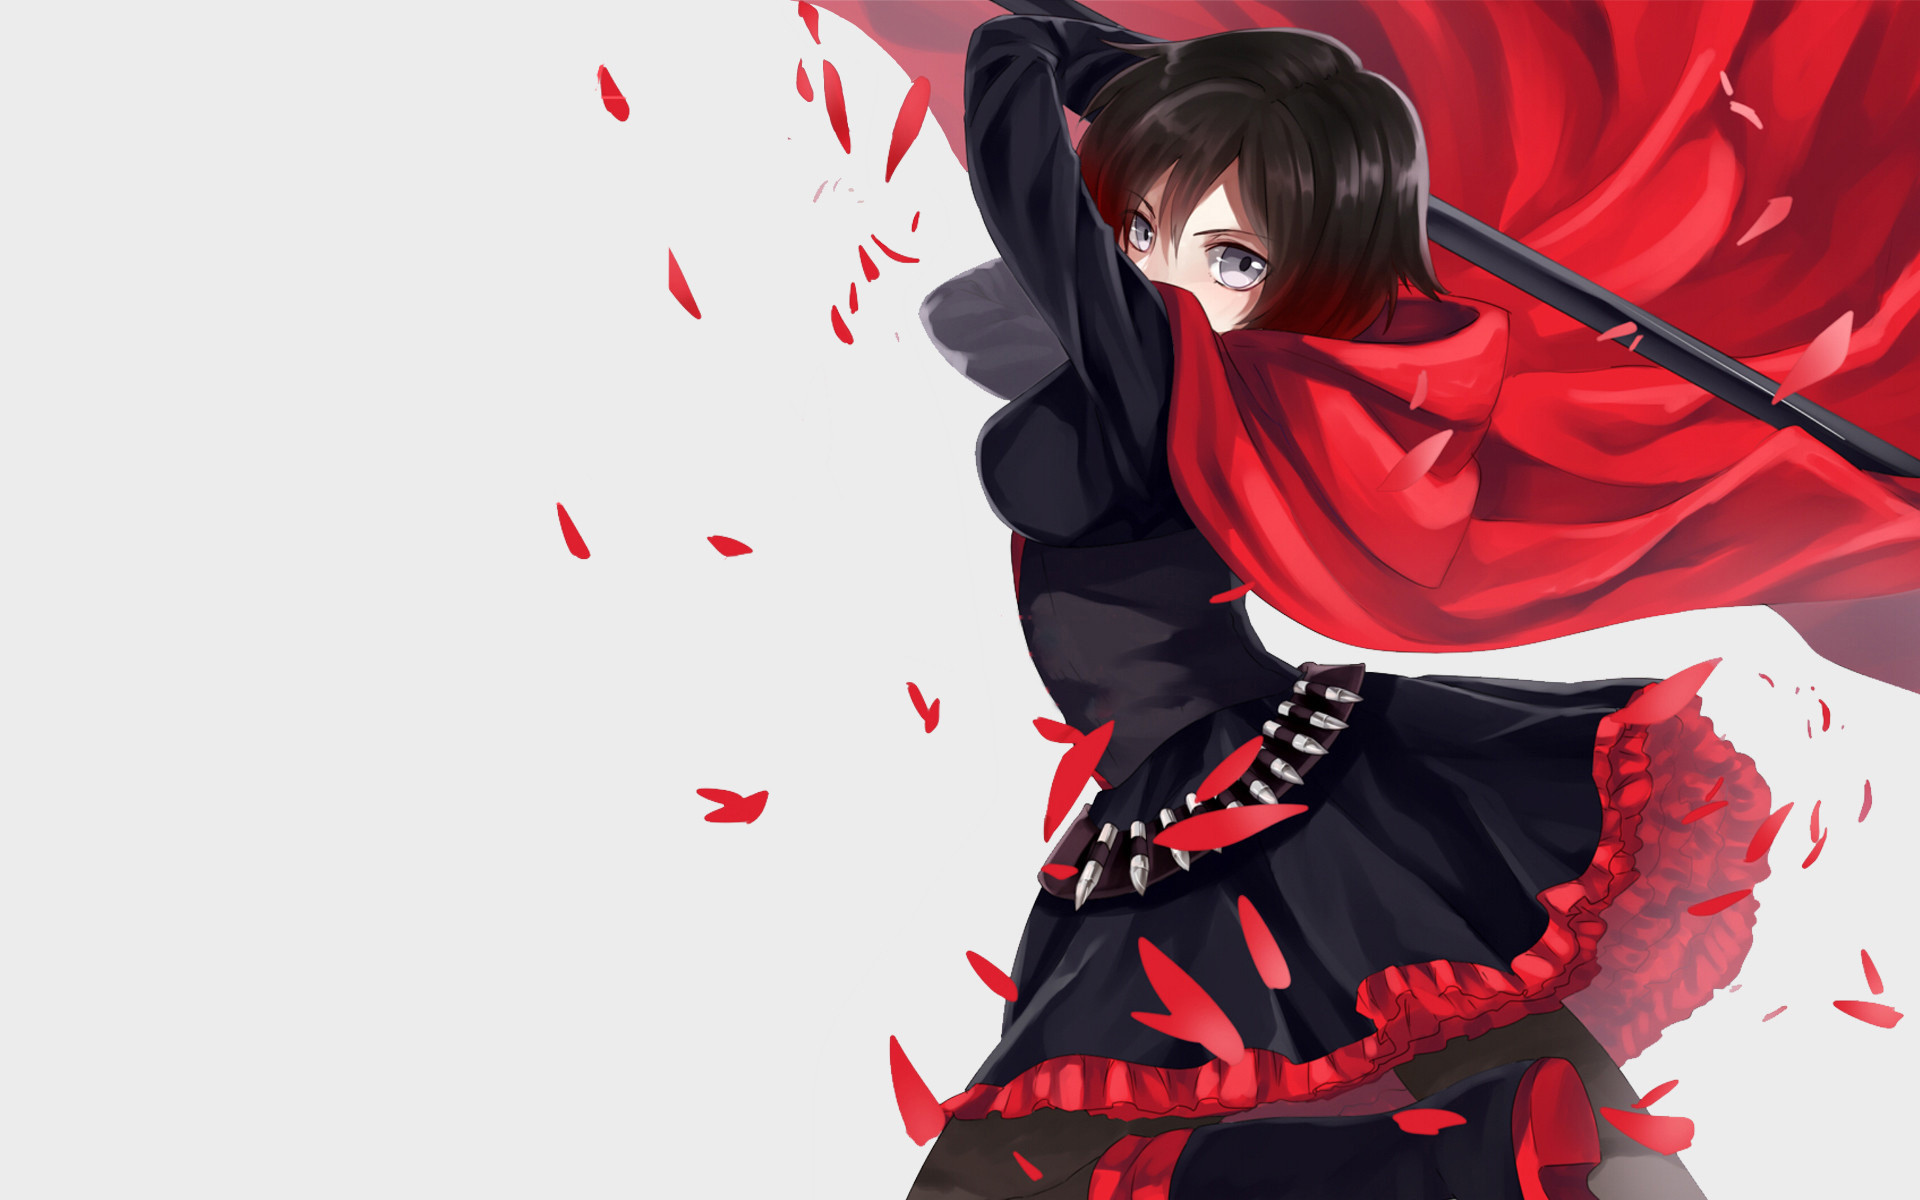 … Anime Wallpapers Anime Girls HD Desktop Backgrounds   Page 3